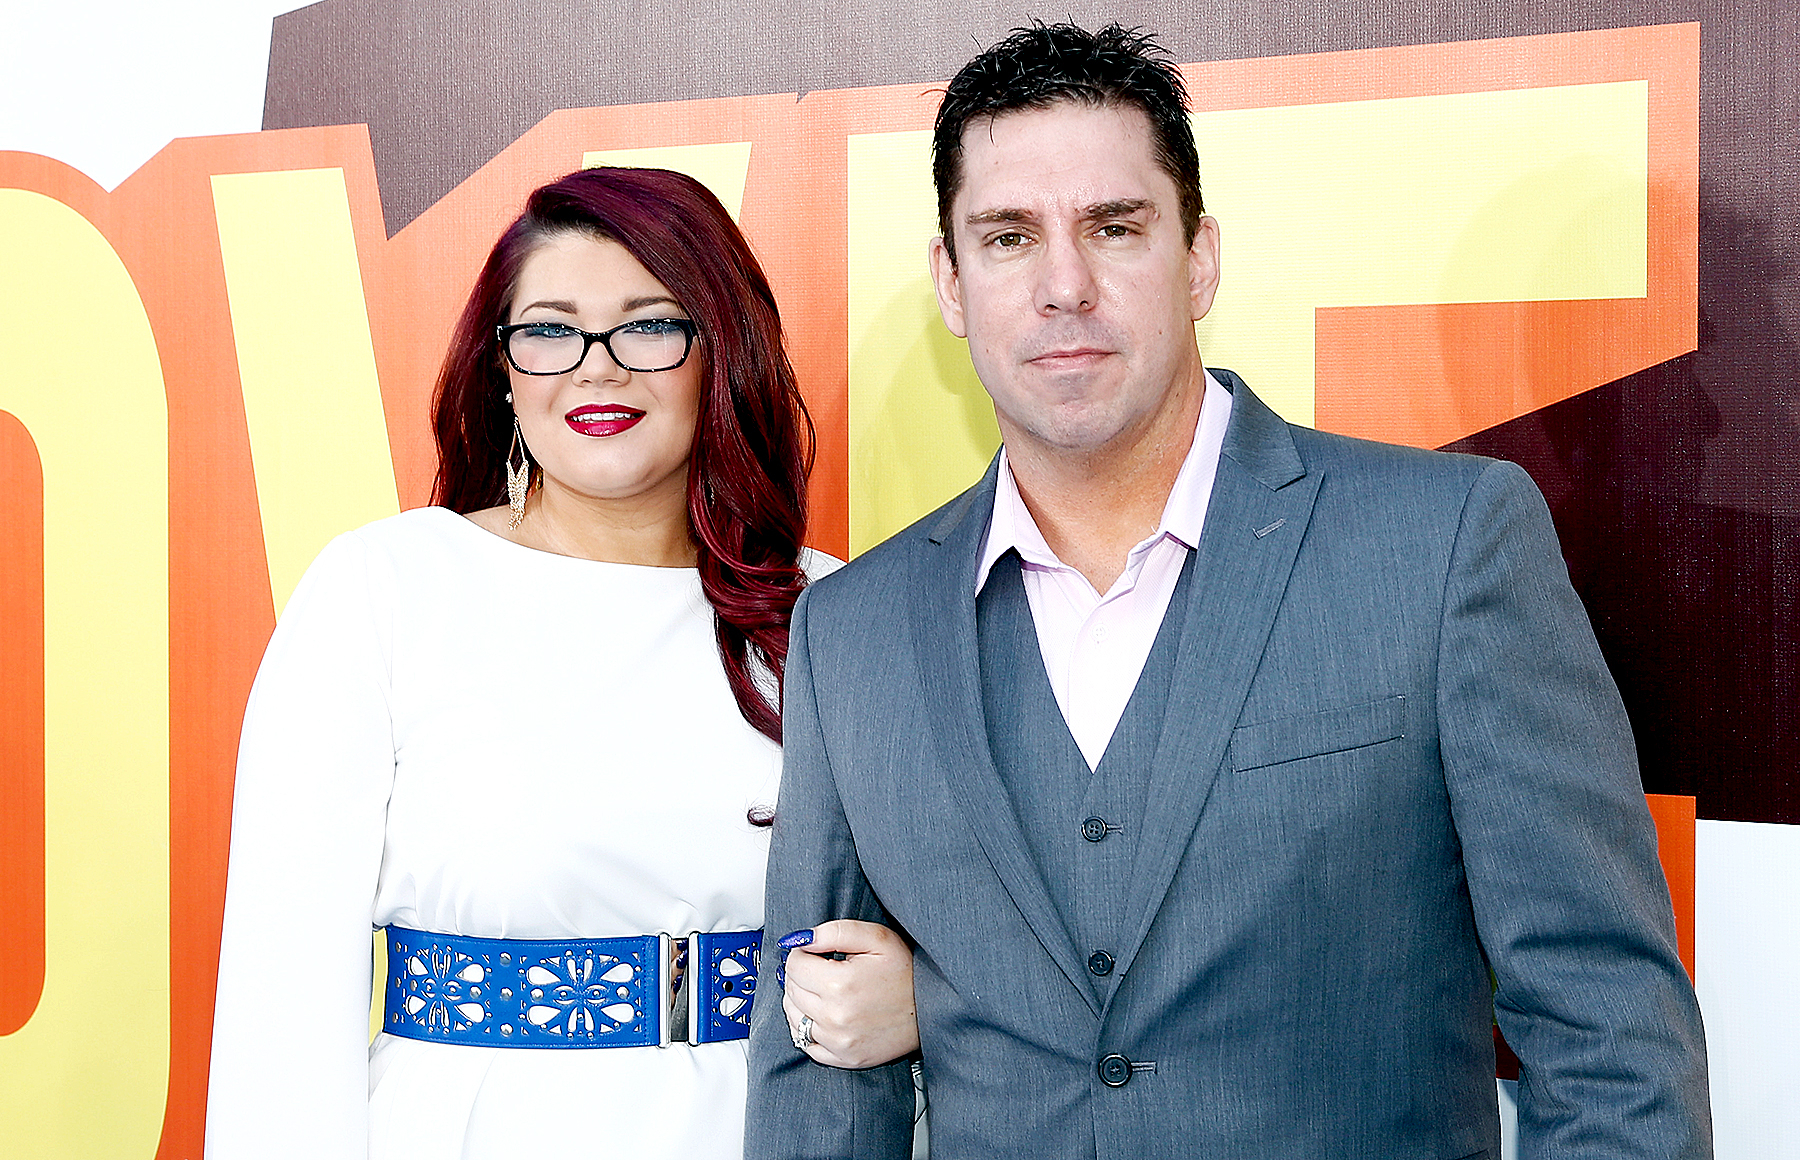 Amber Portwood and Matt Baier attend The 2015 MTV Movie Awards at Nokia Theatre L.A. Live on April 12, 2015 in Los Angeles, California.